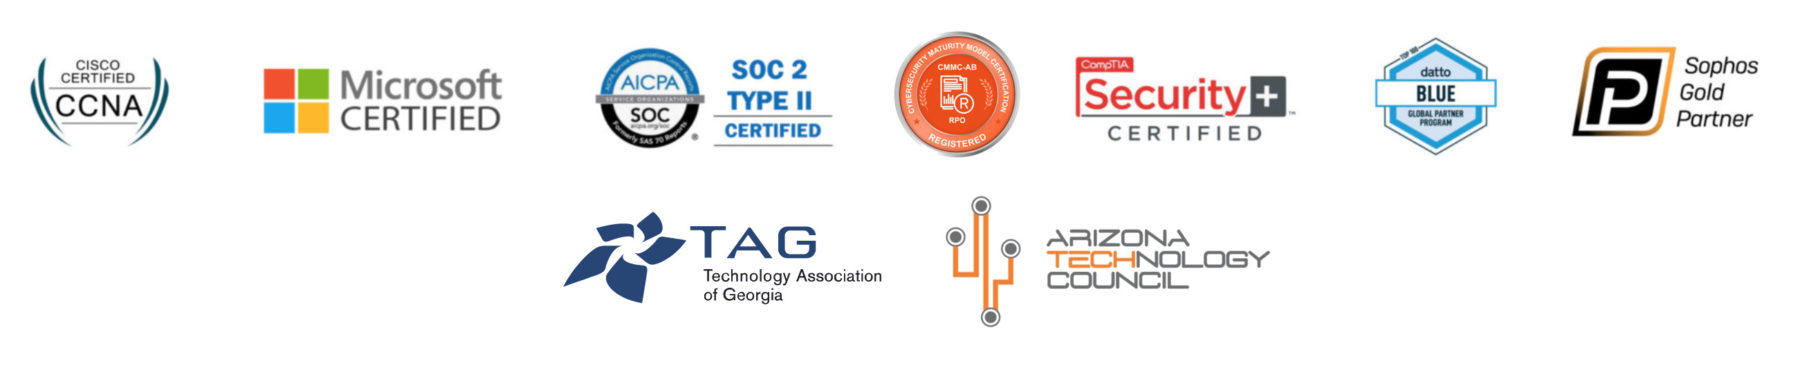 Certifications and Associations